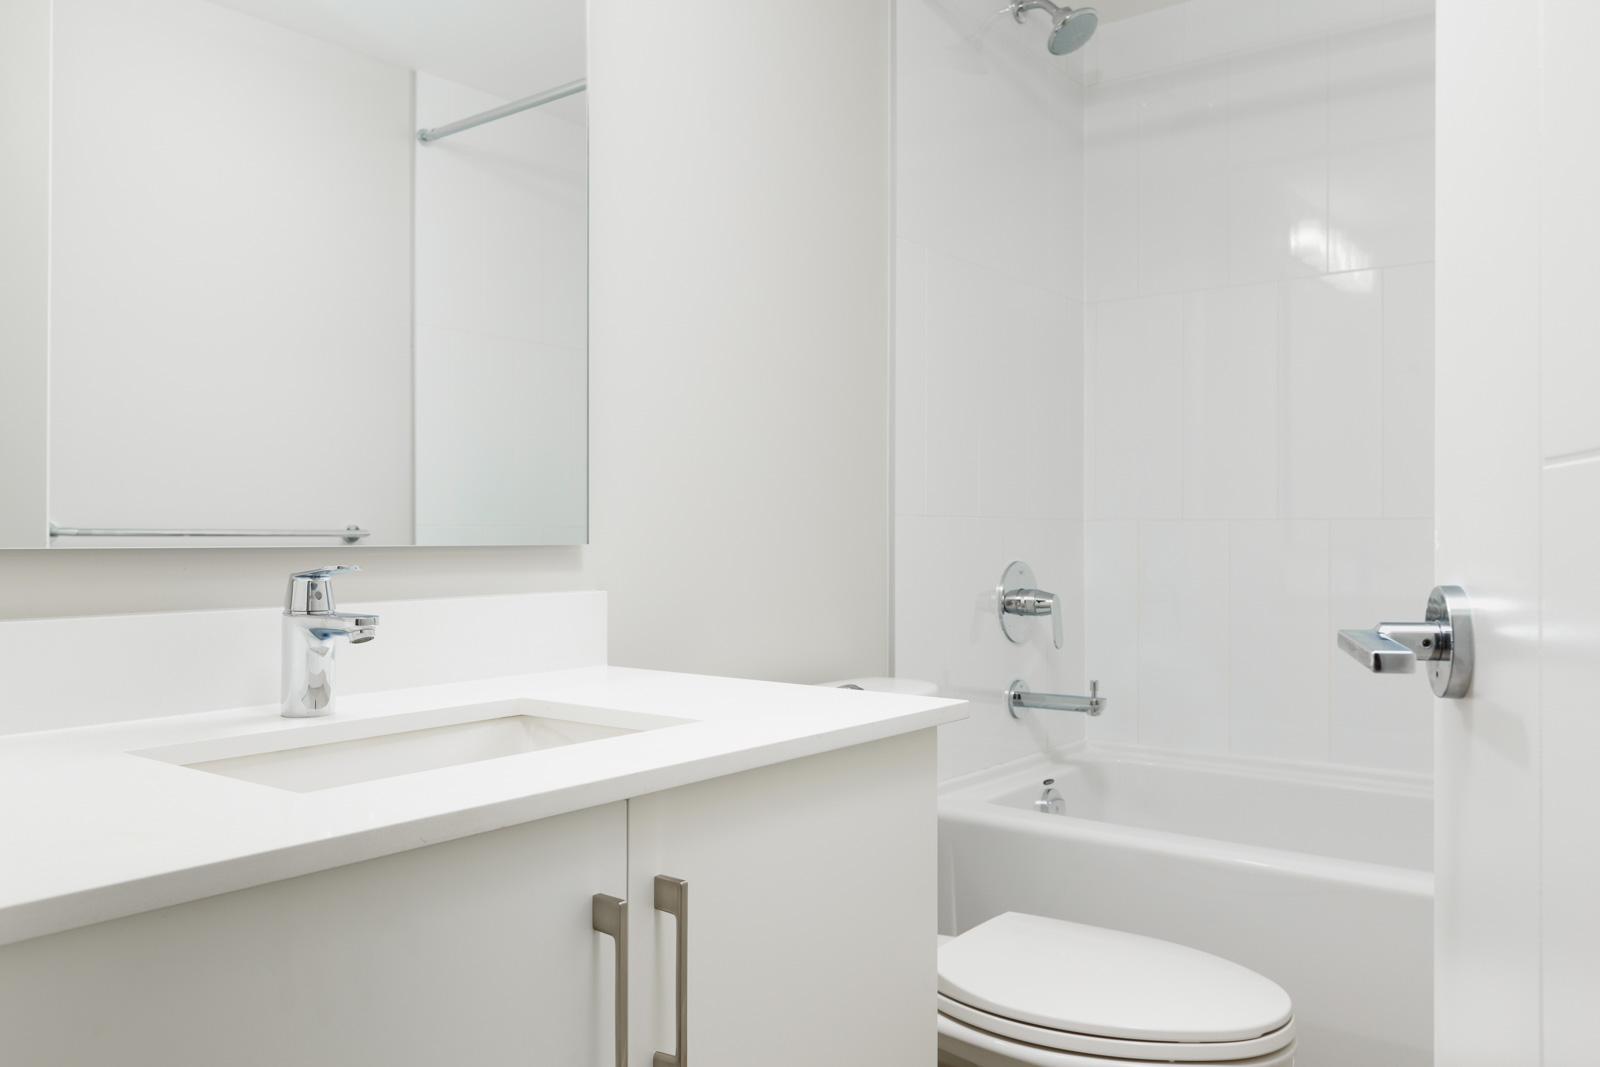 Newly built bathroom inside Richmond luxury rental townhome.